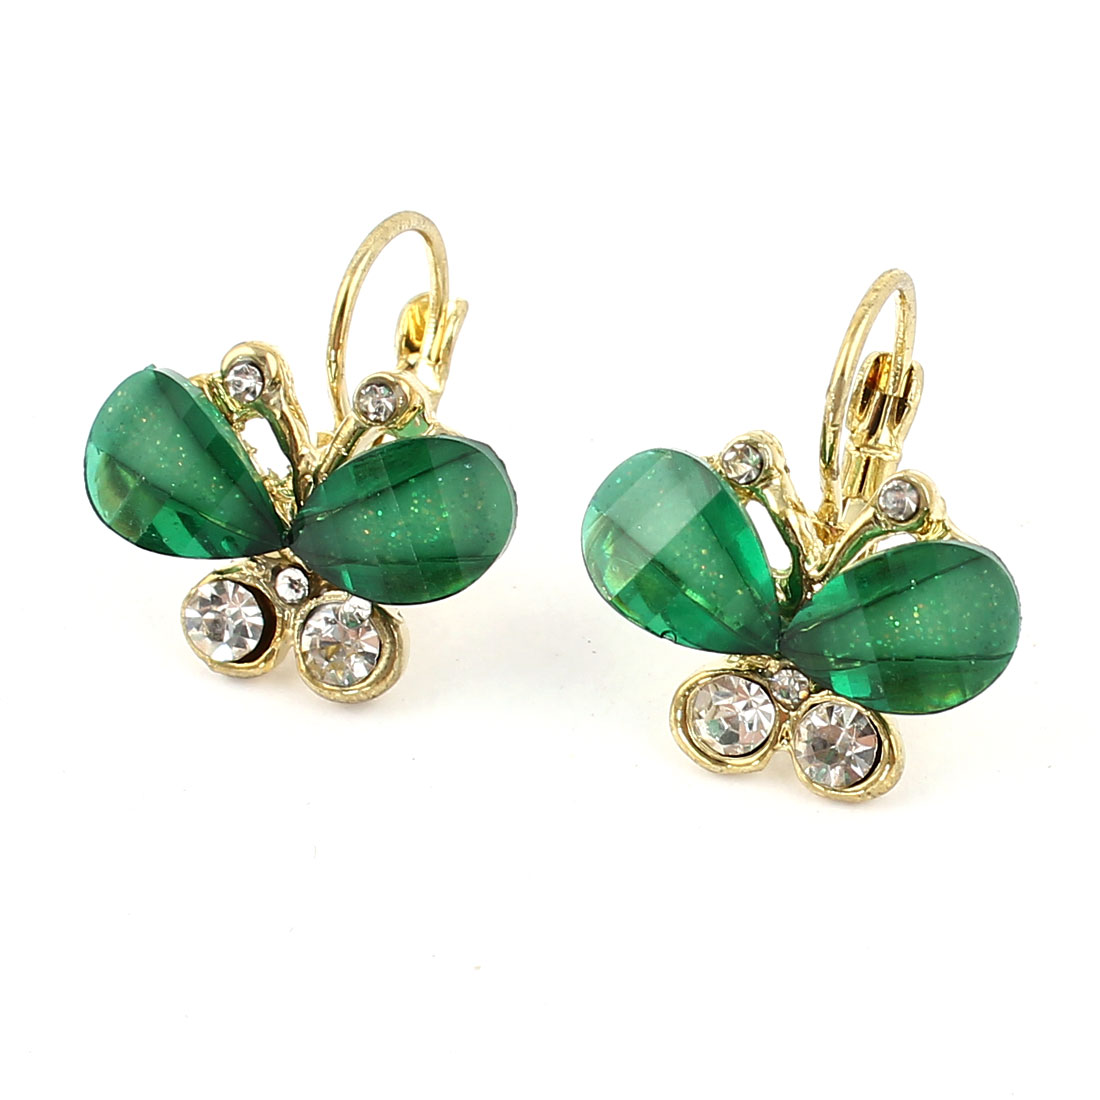 Clear Green Butterfly Shape Pendant Rhinestone Decor French Clip Earrings Pair for Women